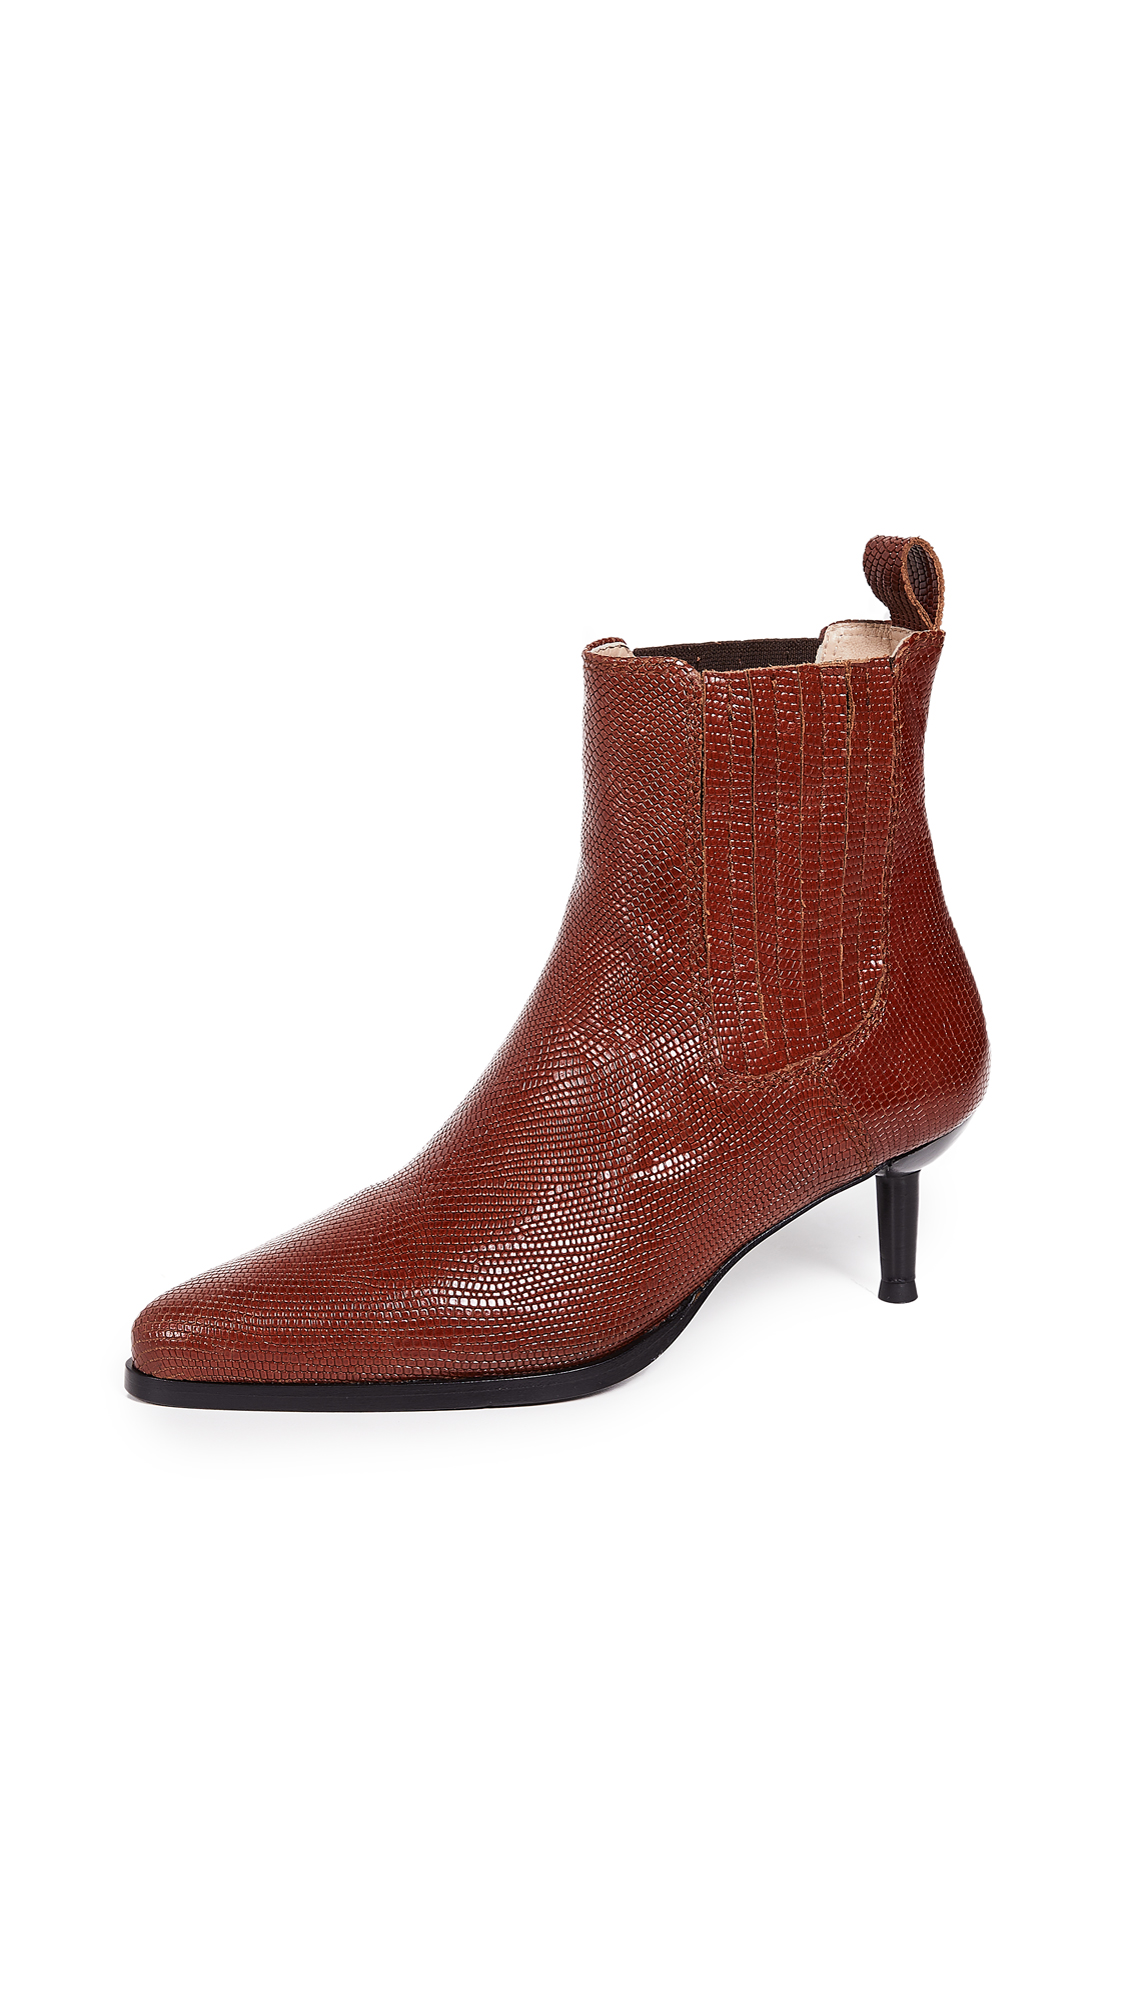 Kalda Sola Booties - Brown